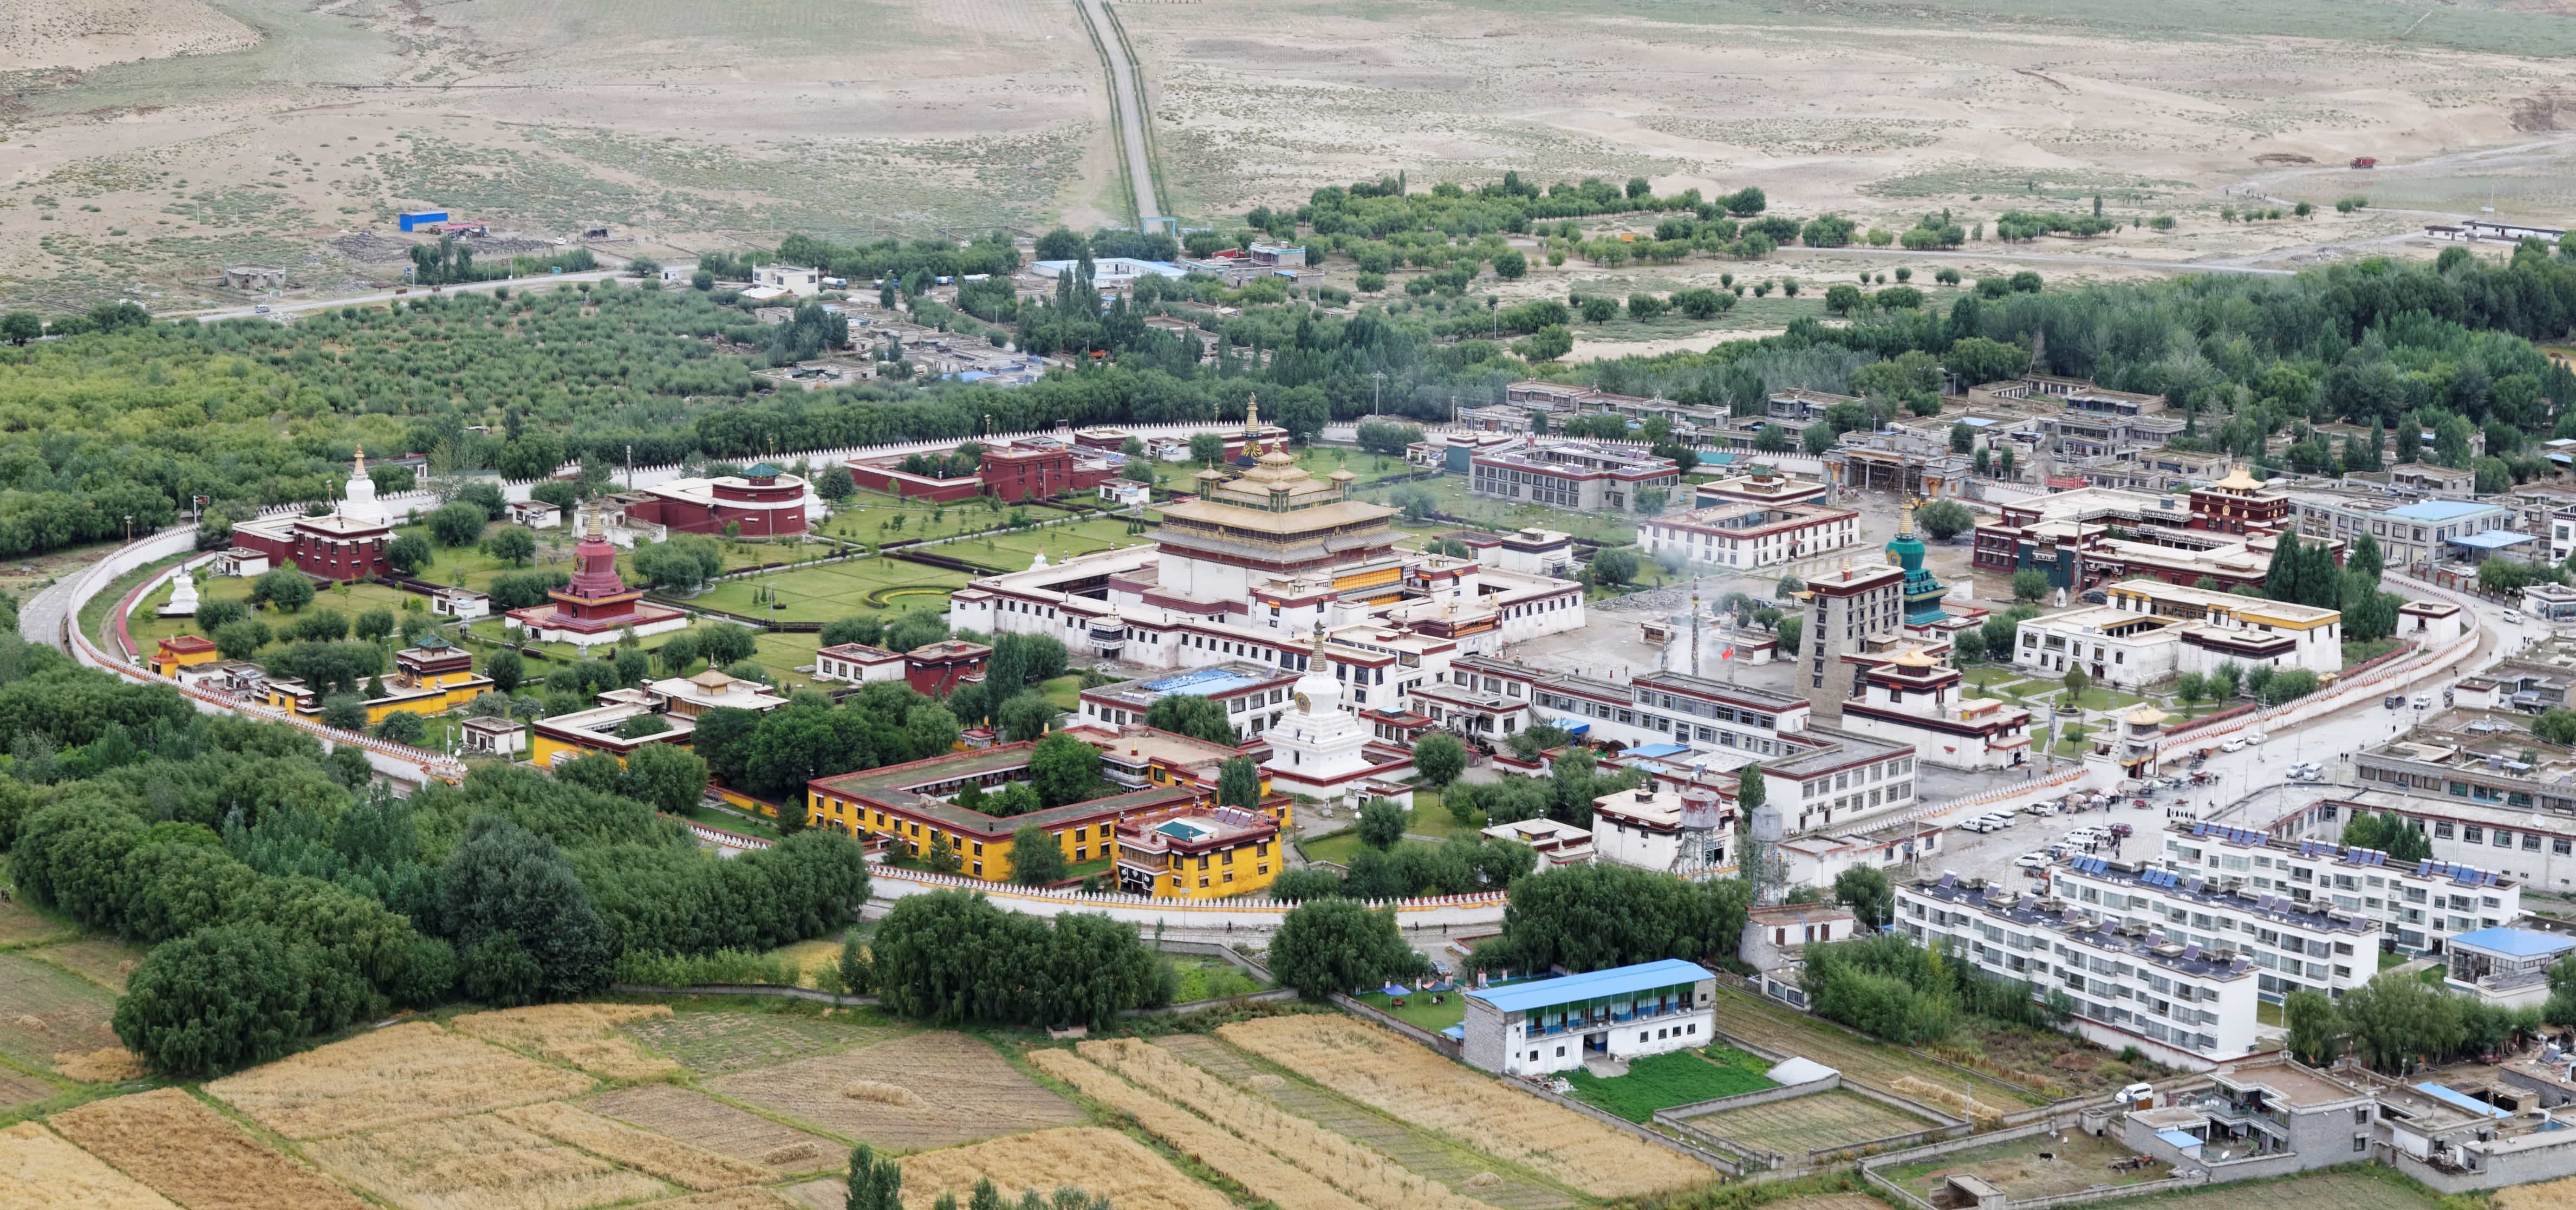 Yarlung valley samye and tsetang birthplace of tibetans old the monastery complex is constructed in a form of a mandala representing the buddhist universe many structures are important symbols biocorpaavc Images